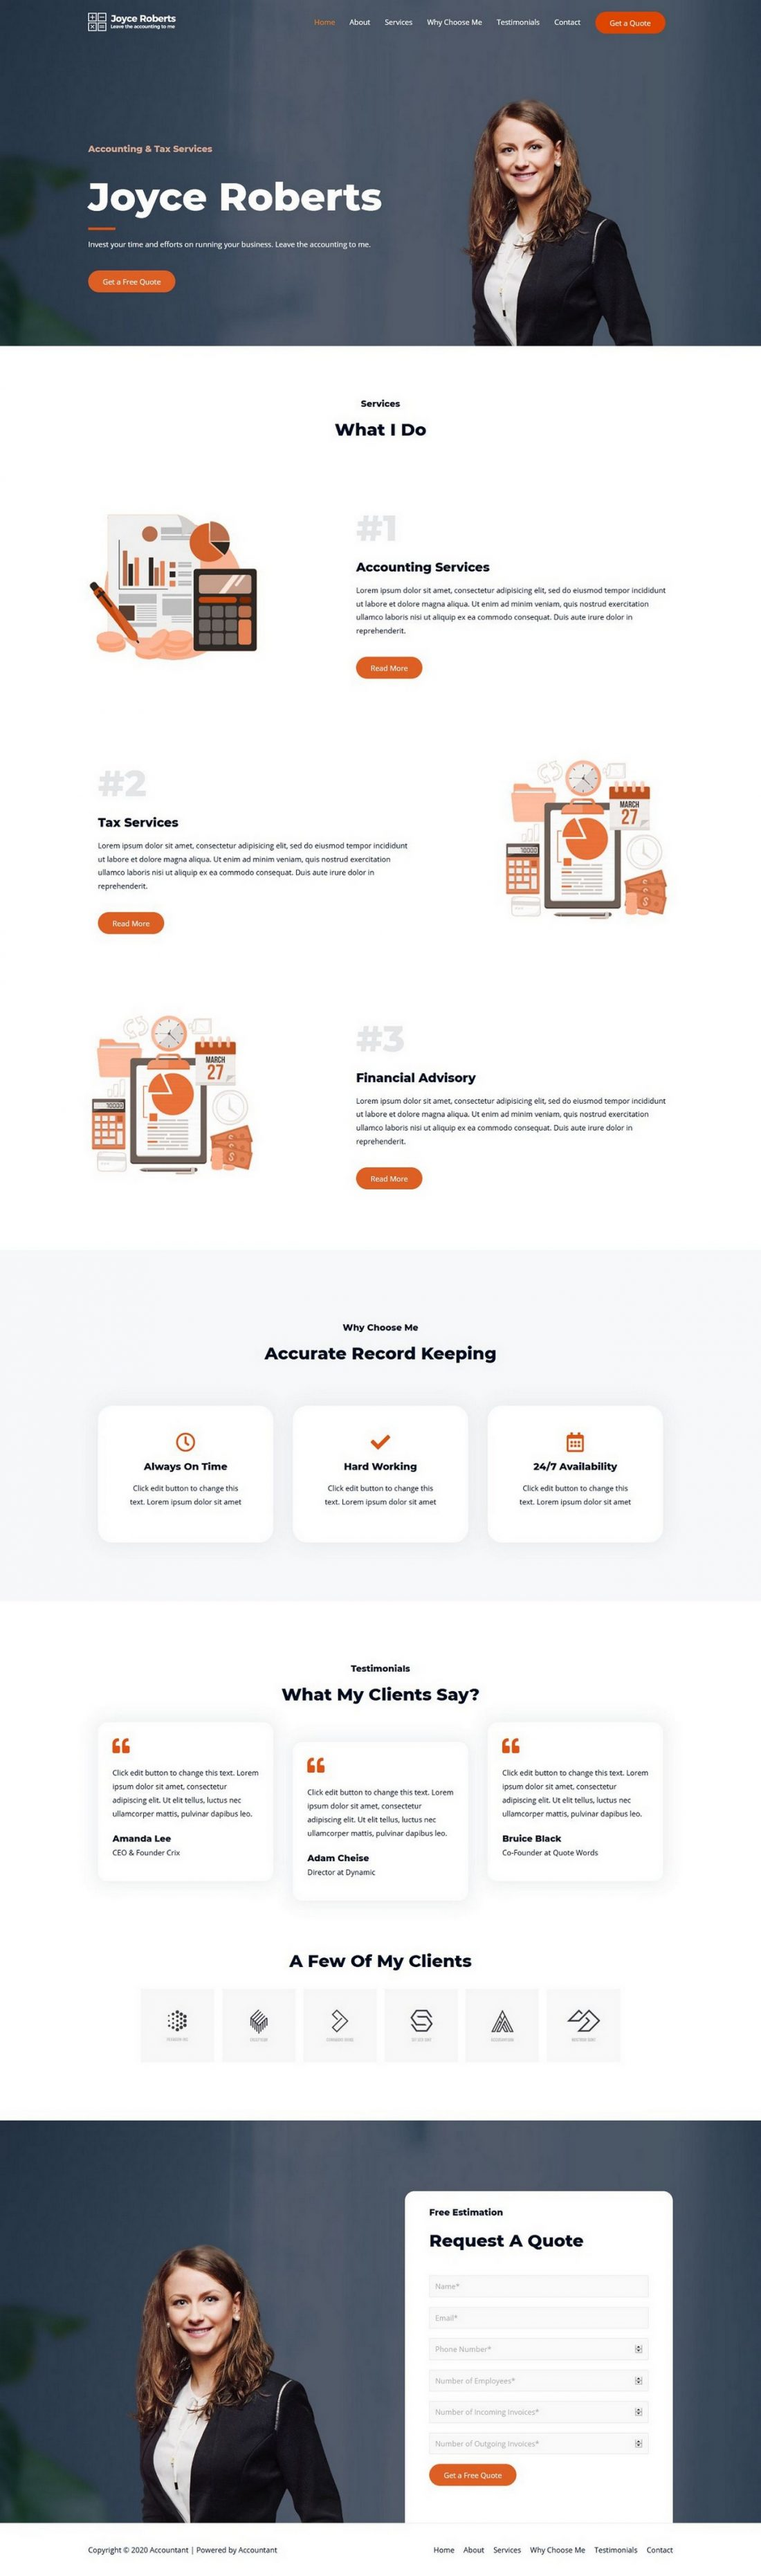 Fagowi.com Website Design Templates For Accountant Book-keeper - Home Page Image